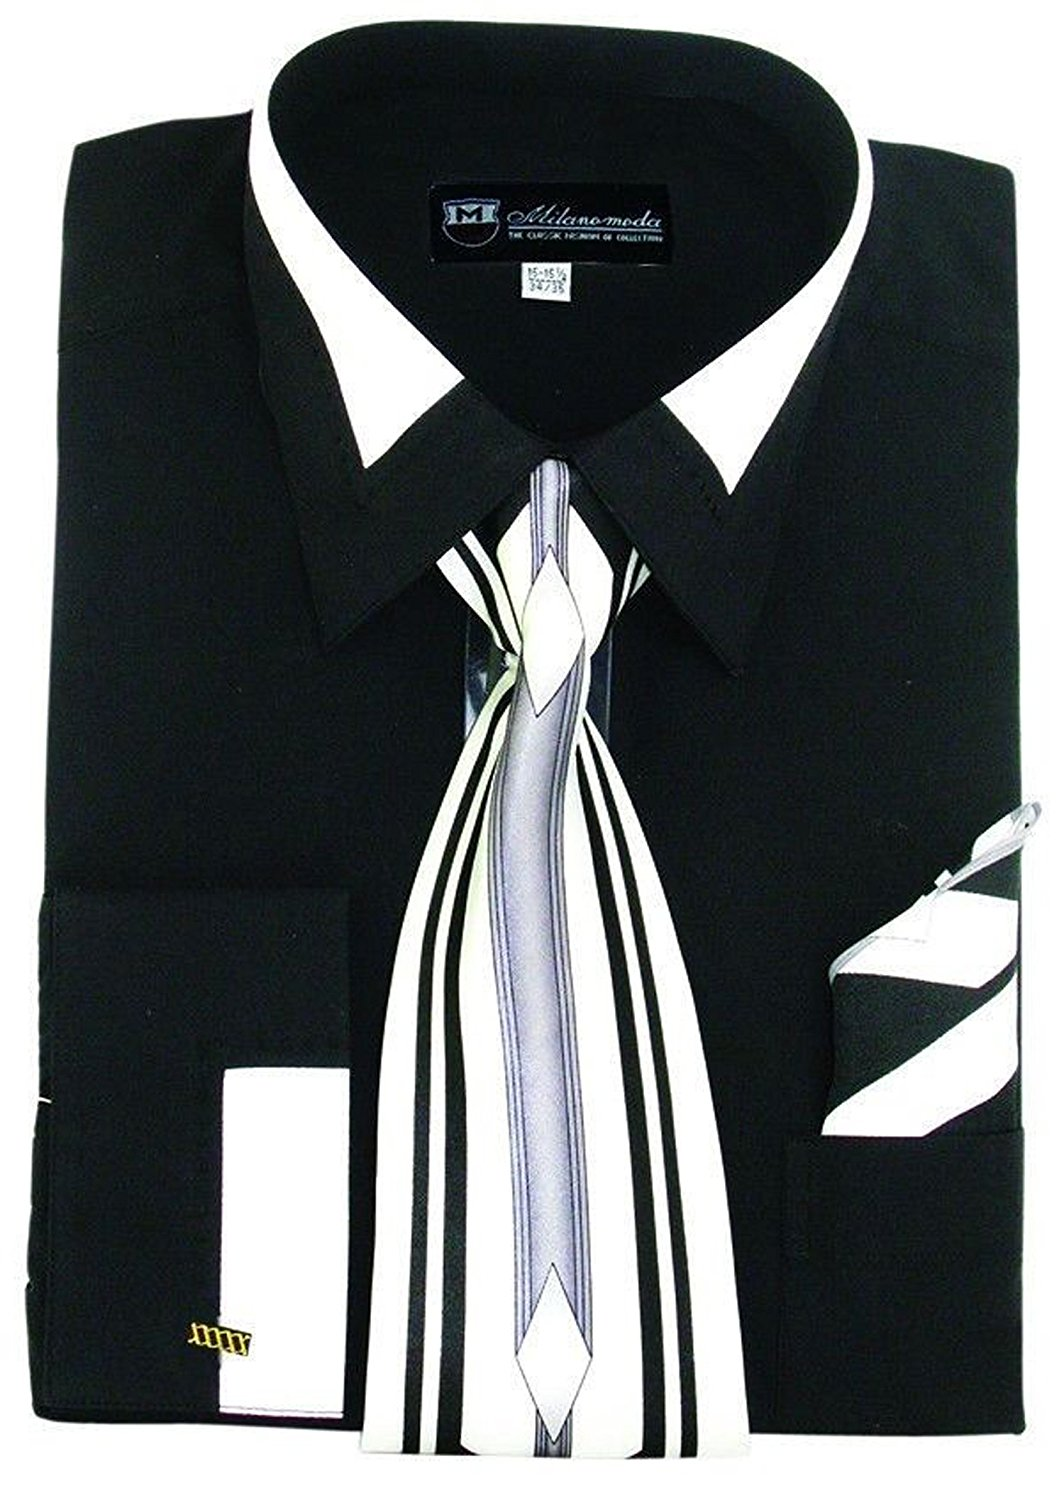 Cheap Fashion Shirt And Tie Combinations Find Fashion Shirt And Tie